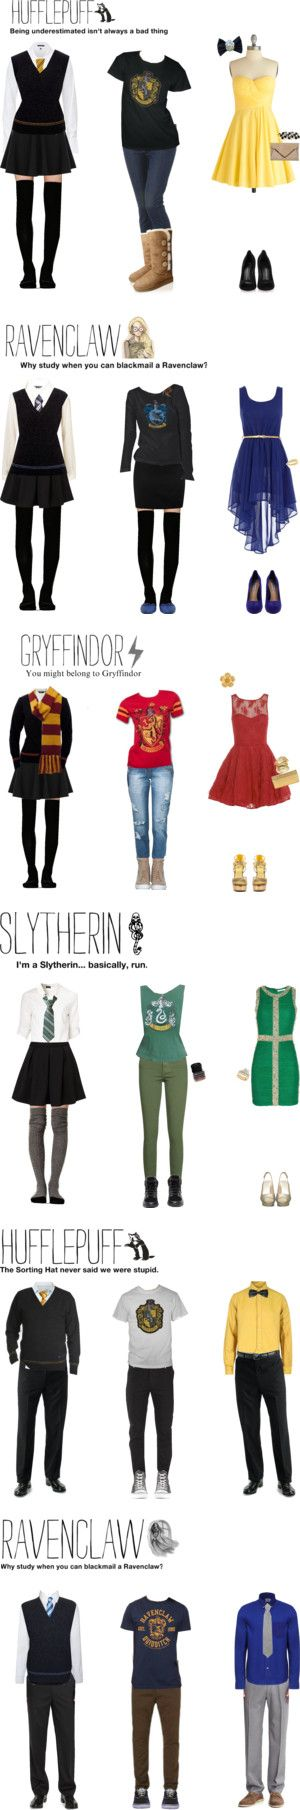 """""""Hogwarts Clothing"""" by aine-angel ❤ liked on Polyvore"""